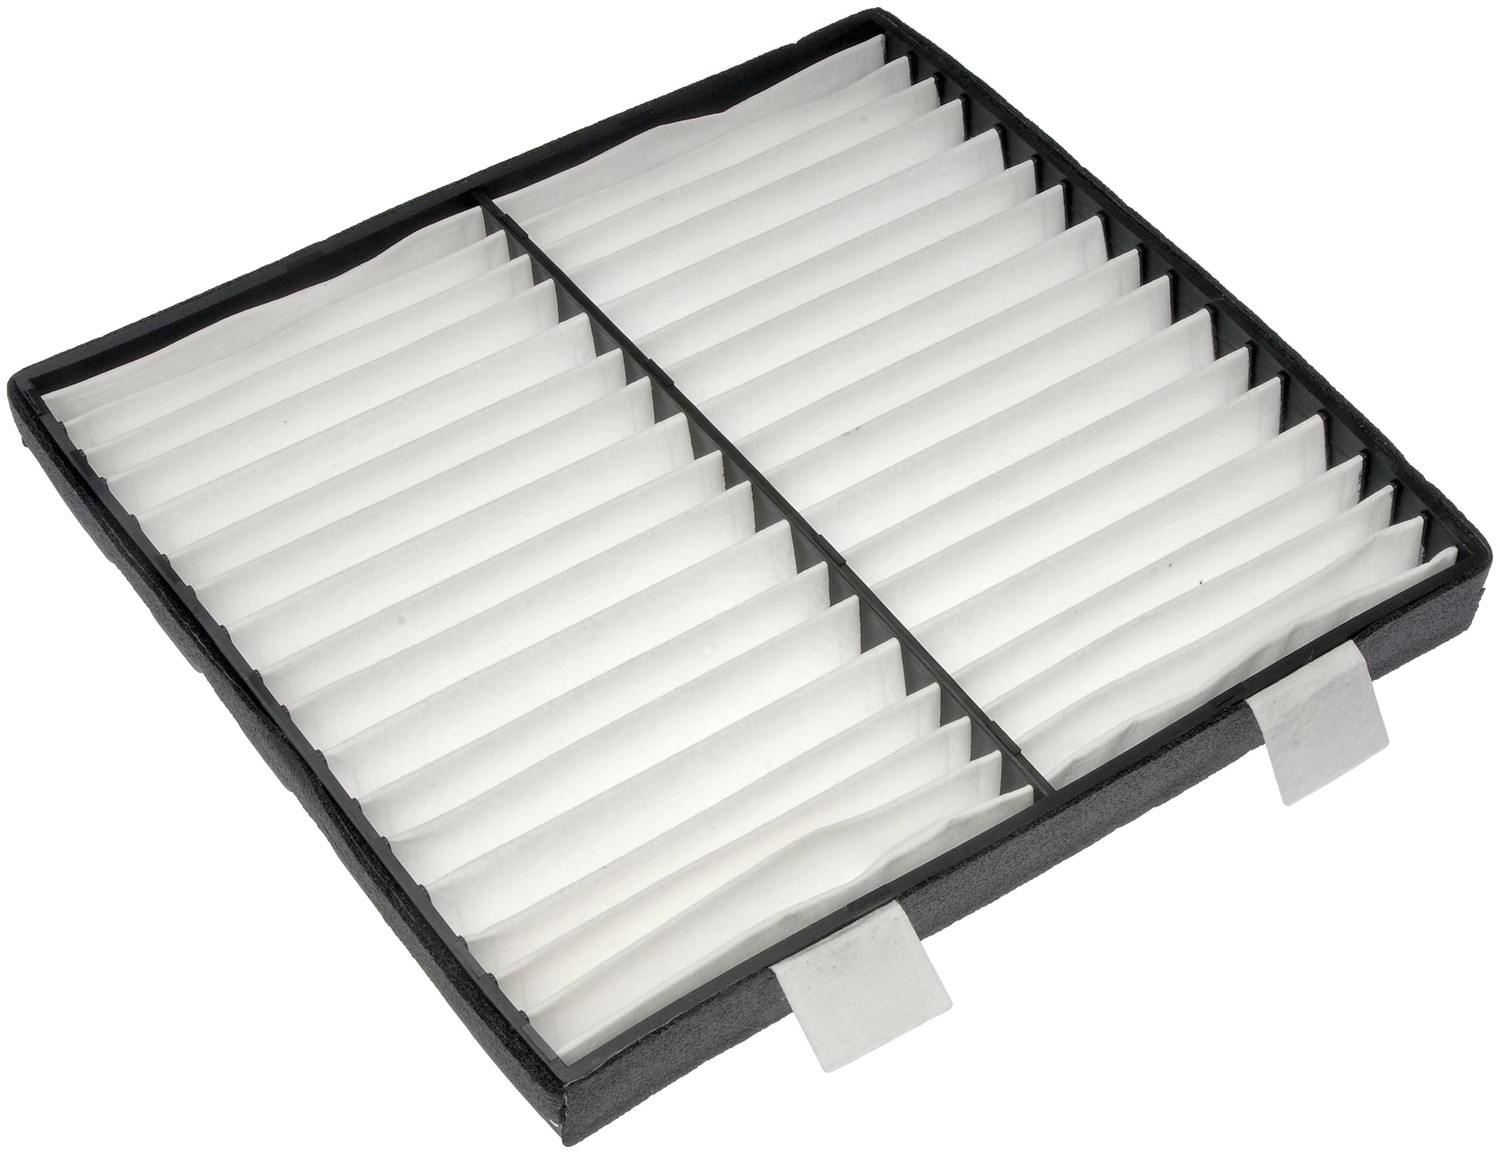 DORMAN OE SOLUTIONS - Cabin Air Filter - DRE 259-000